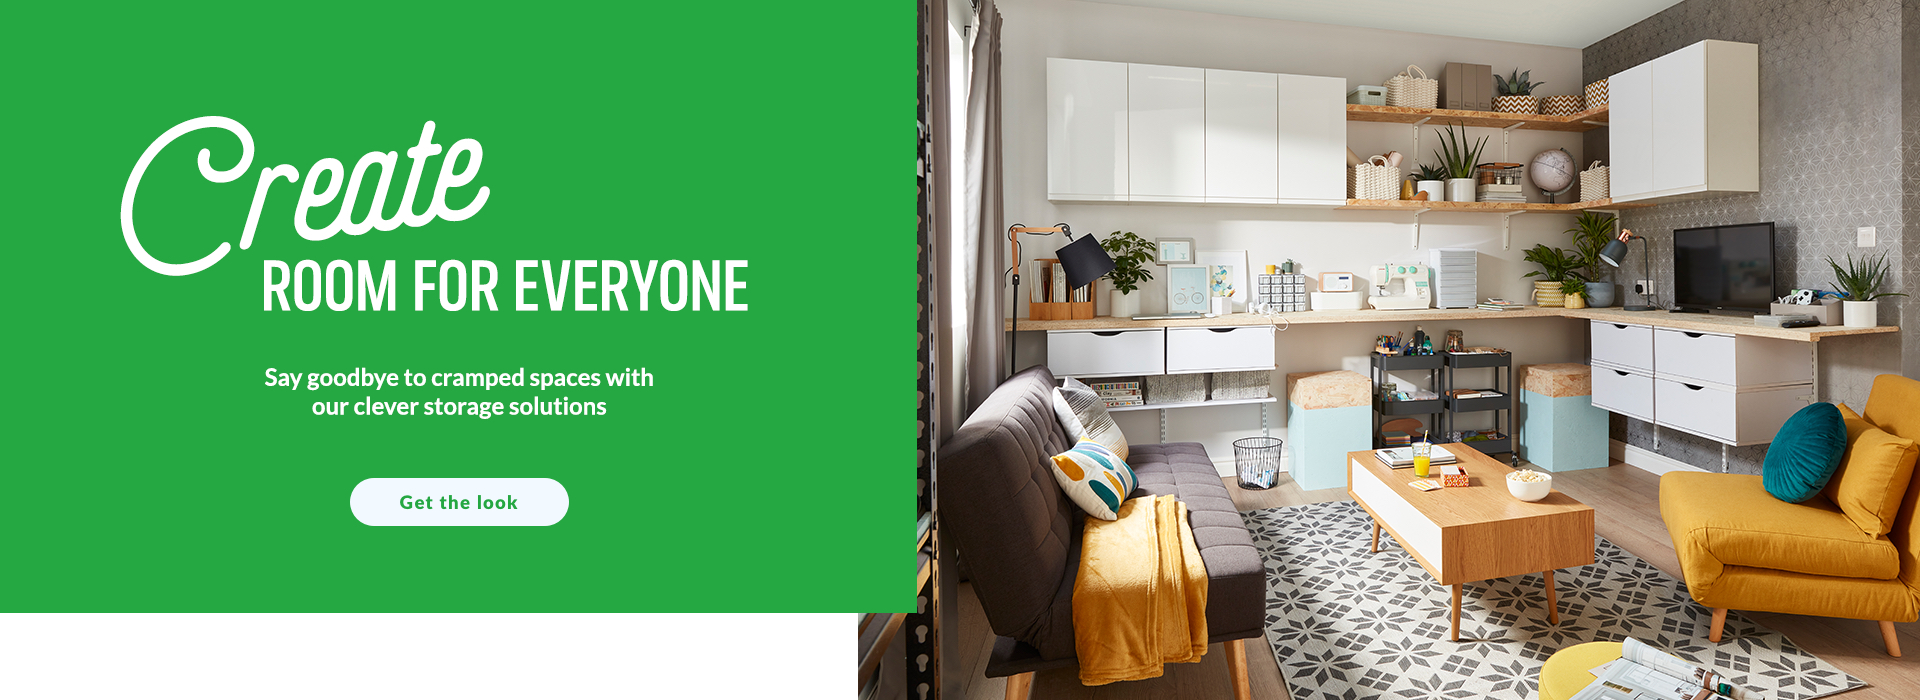 Create room for everyone. Hit the refresh on cramped spaces with our clever storage solutions. Shop now.